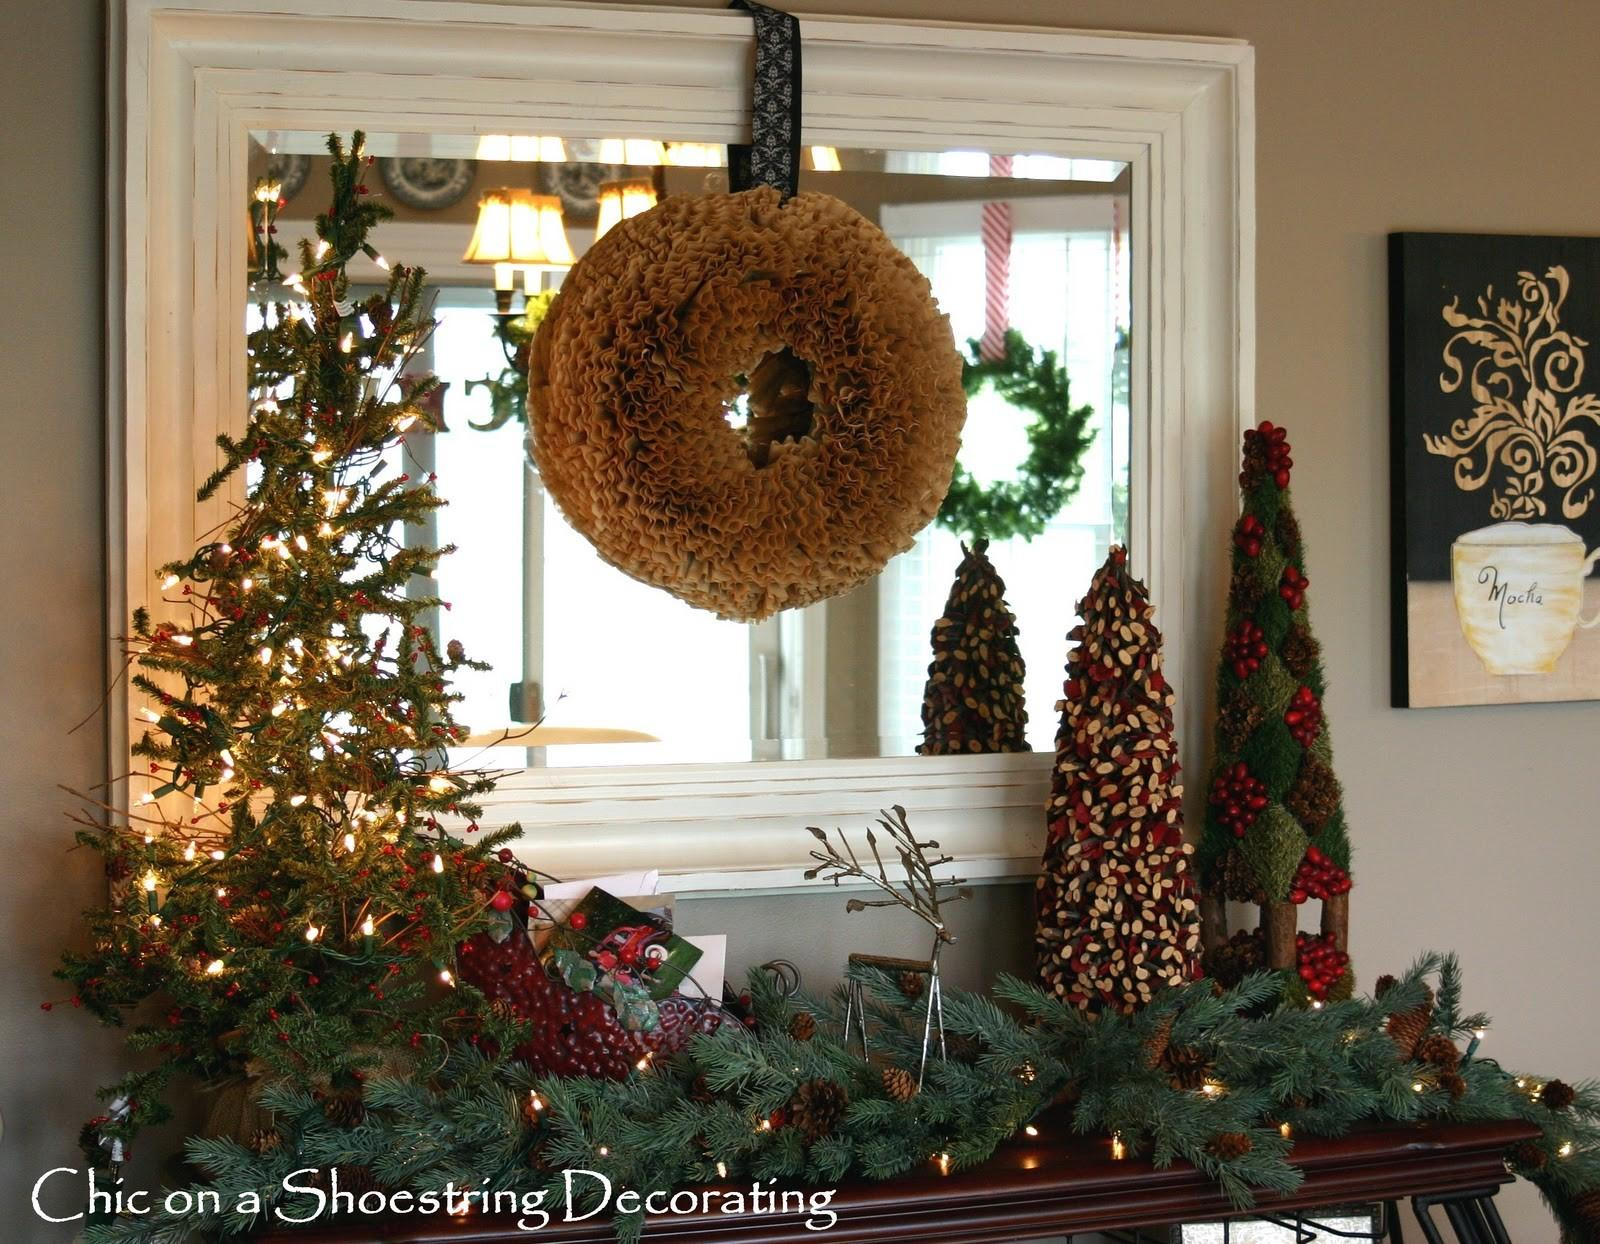 Chic Shoestring Decorating Rustic Christmas Vignette